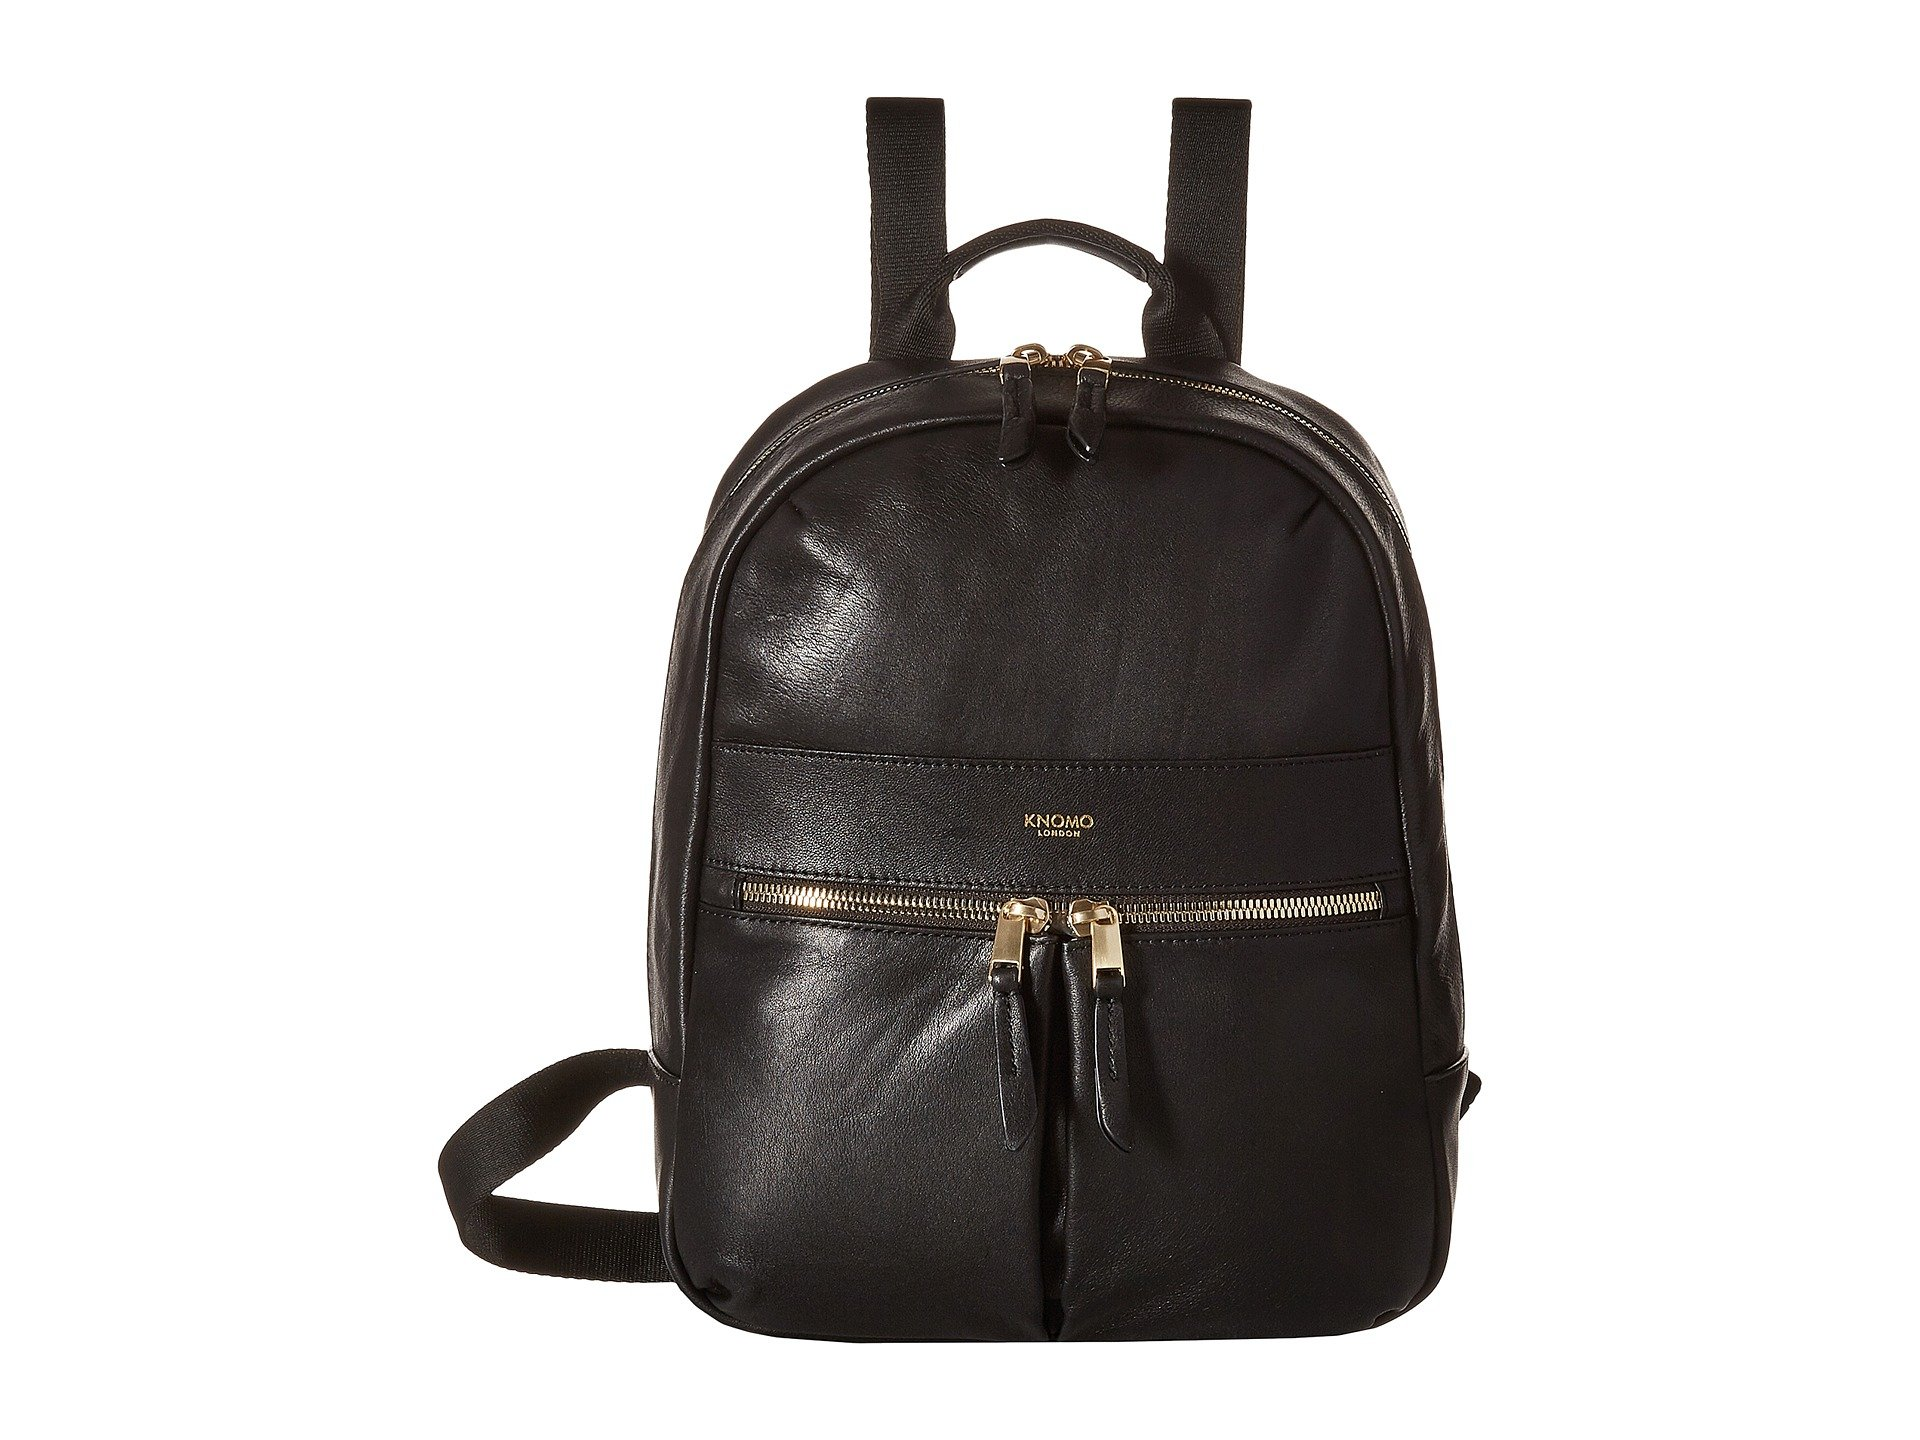 a7b92e0b2928 Knomo Mini Beaux Backpack in Black - Lyst